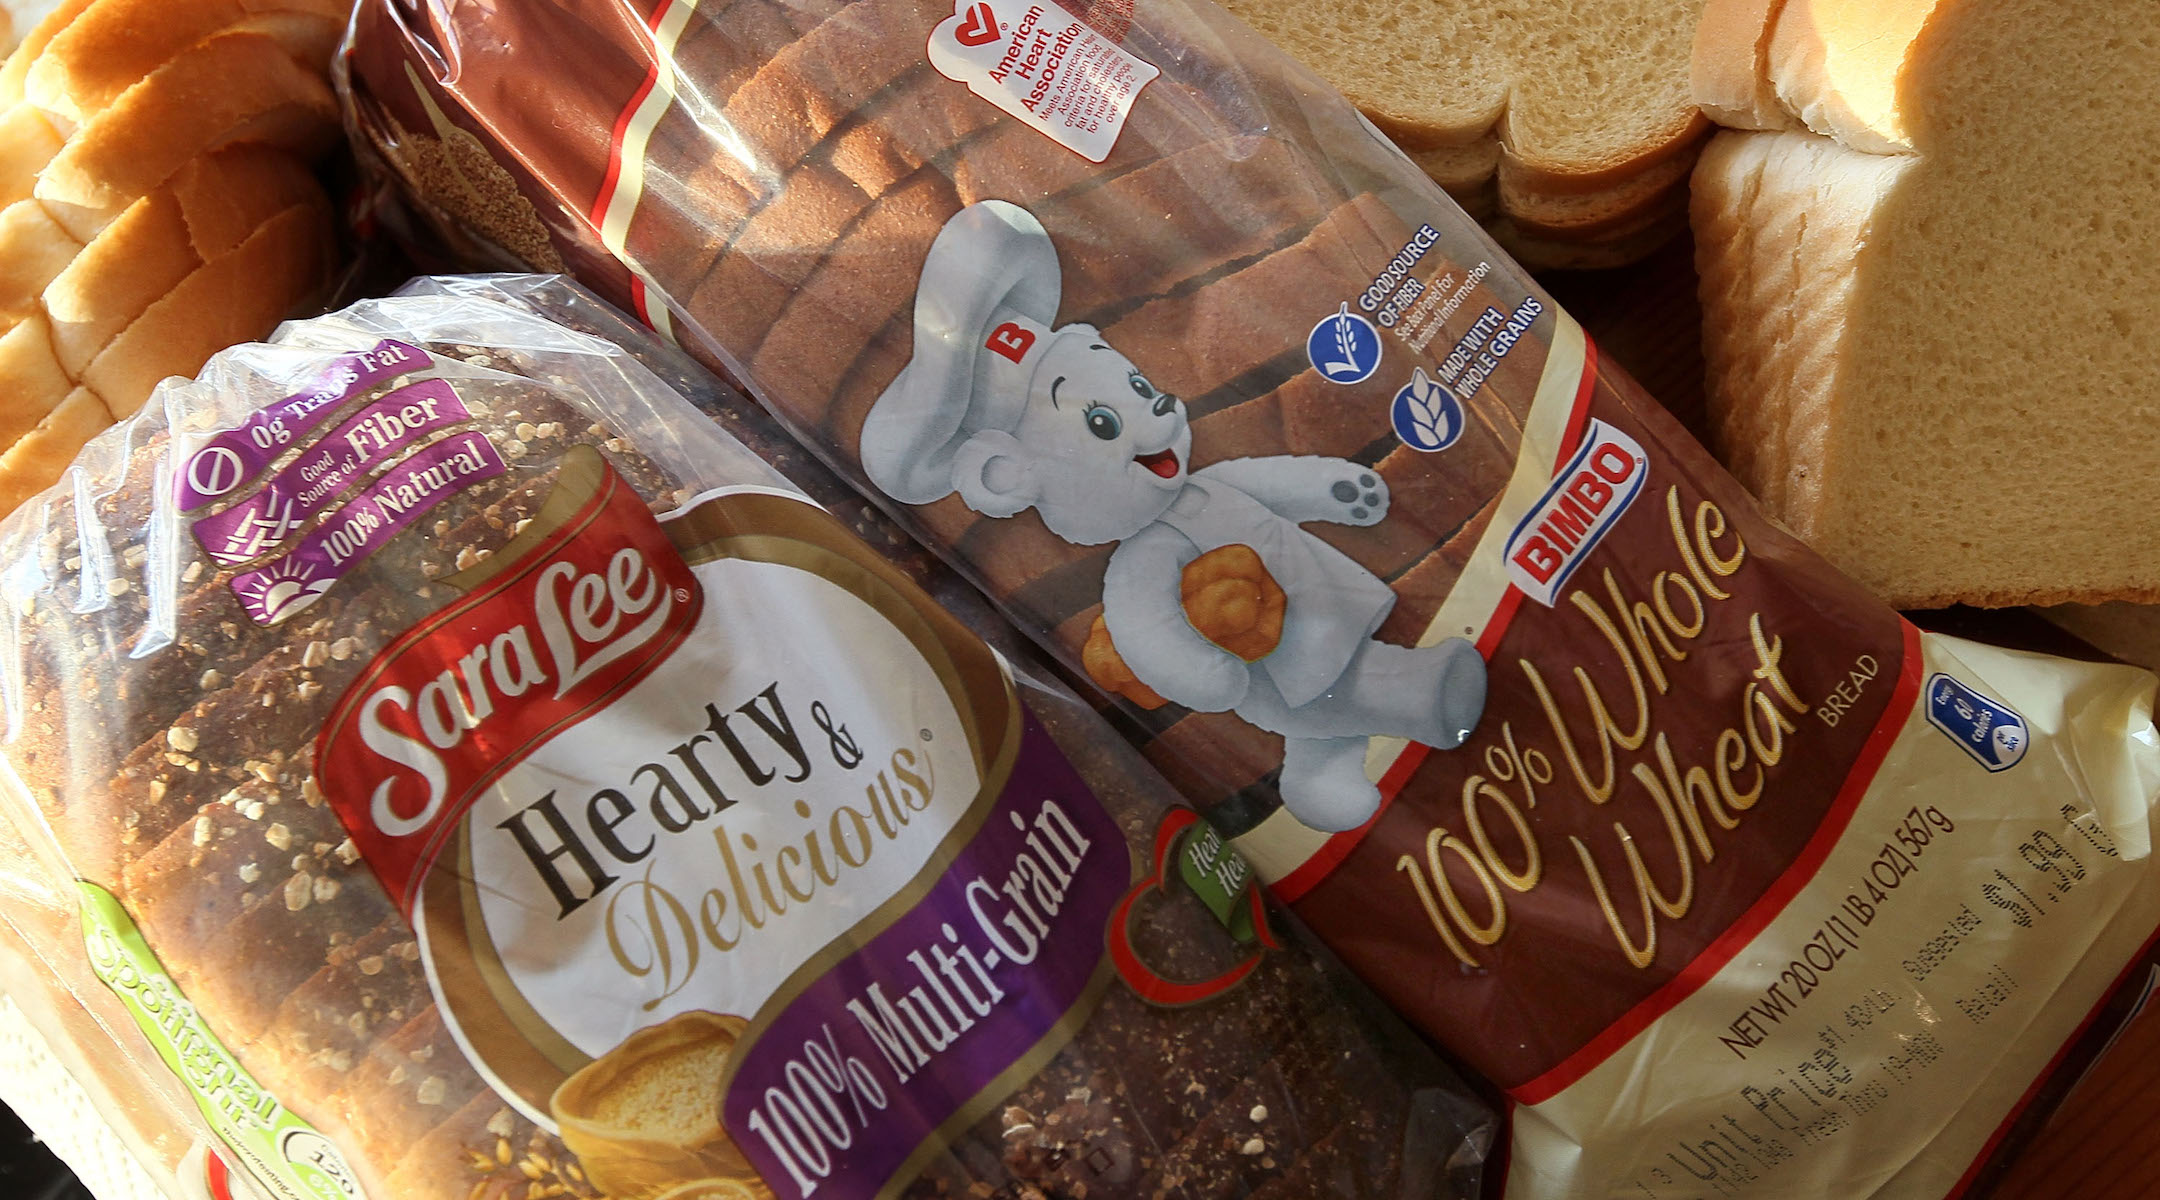 Sara Lee And Bimbo Bread Products Are Displayed Together In A Chicago Store 2010